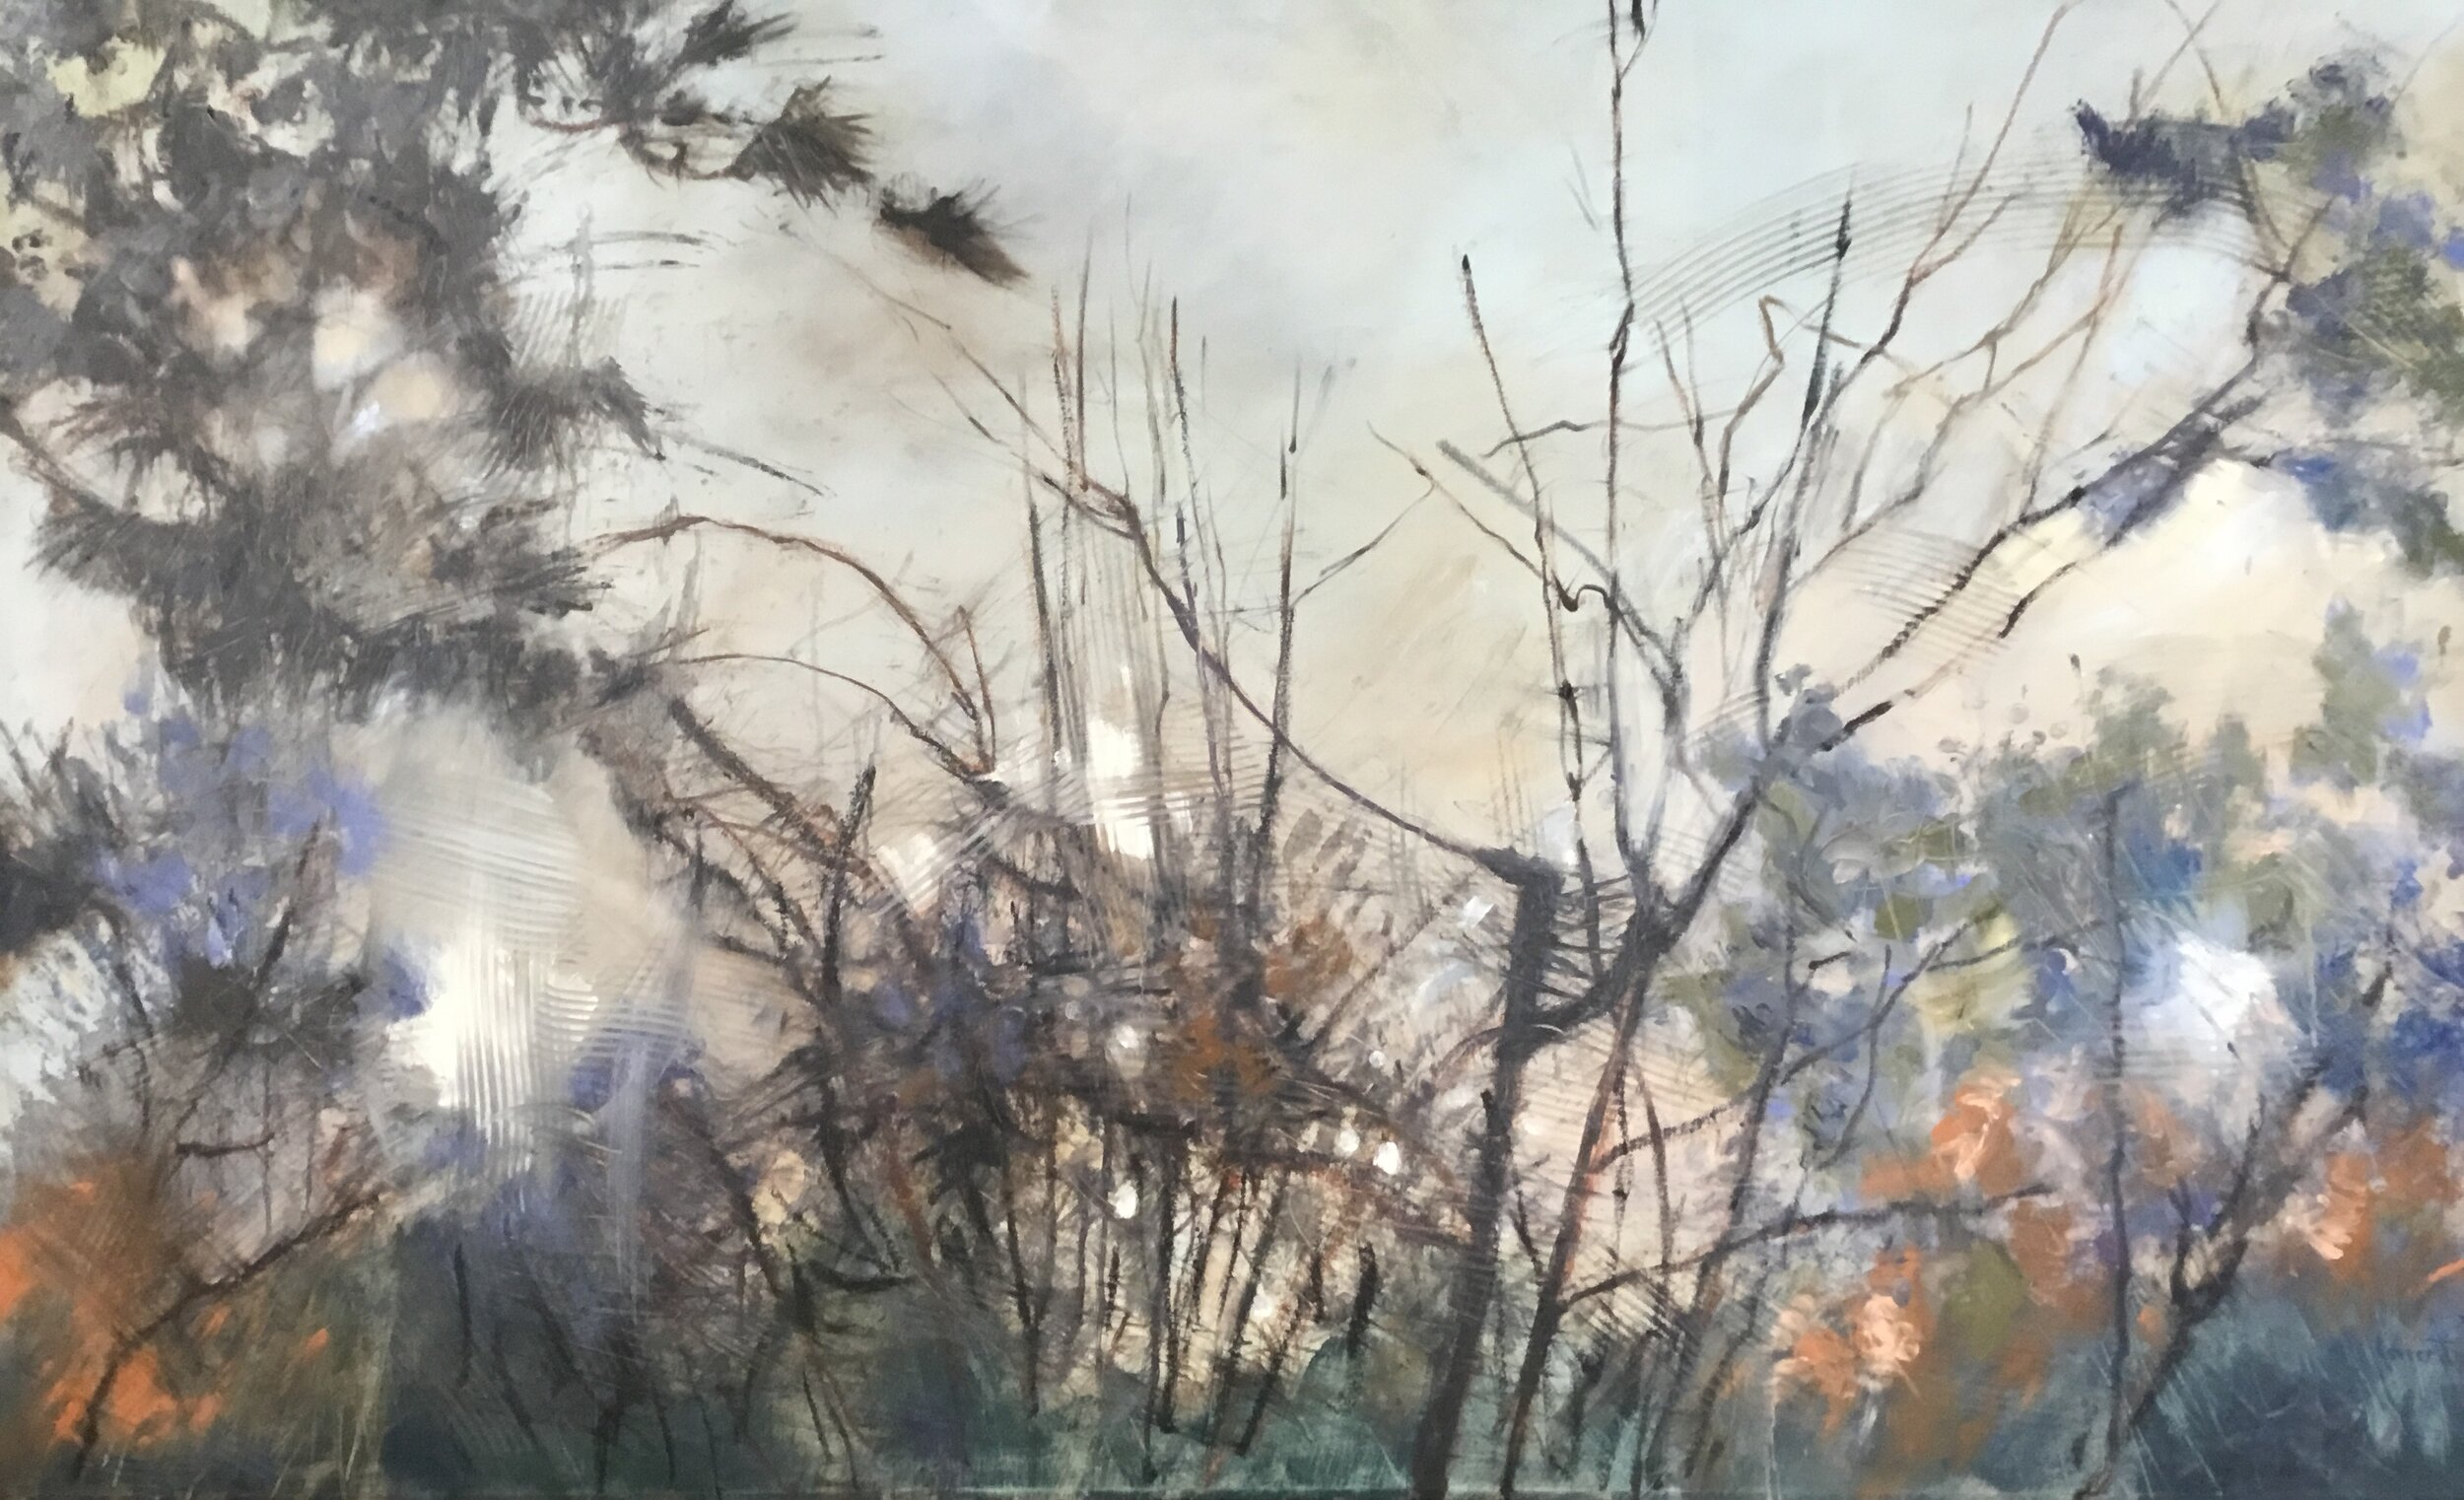 """Down among the reeds and rushes II, 36 x 60 """", oil on canvas"""